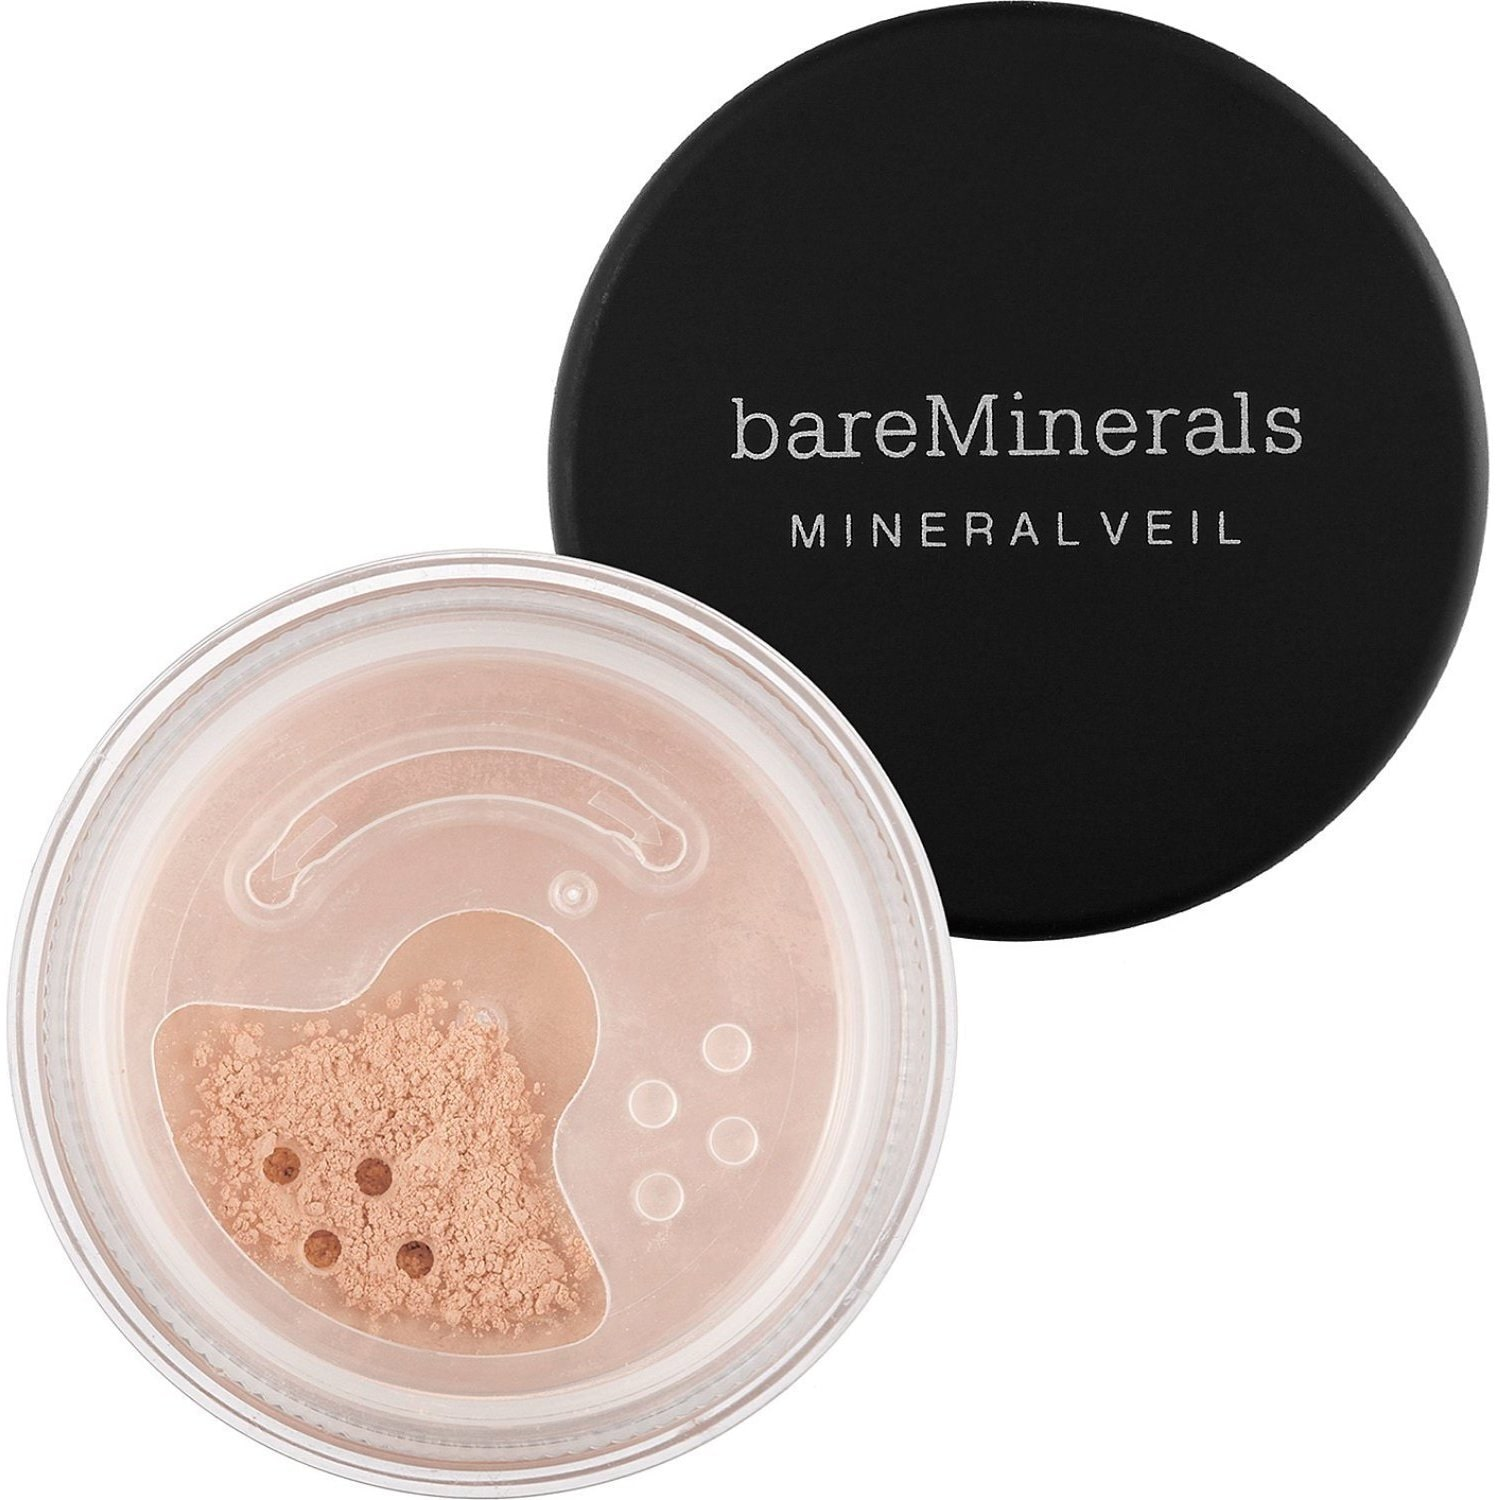 bareMinerals Mineral Veil Finishing Powder, Illuminating, 0.3 Oz